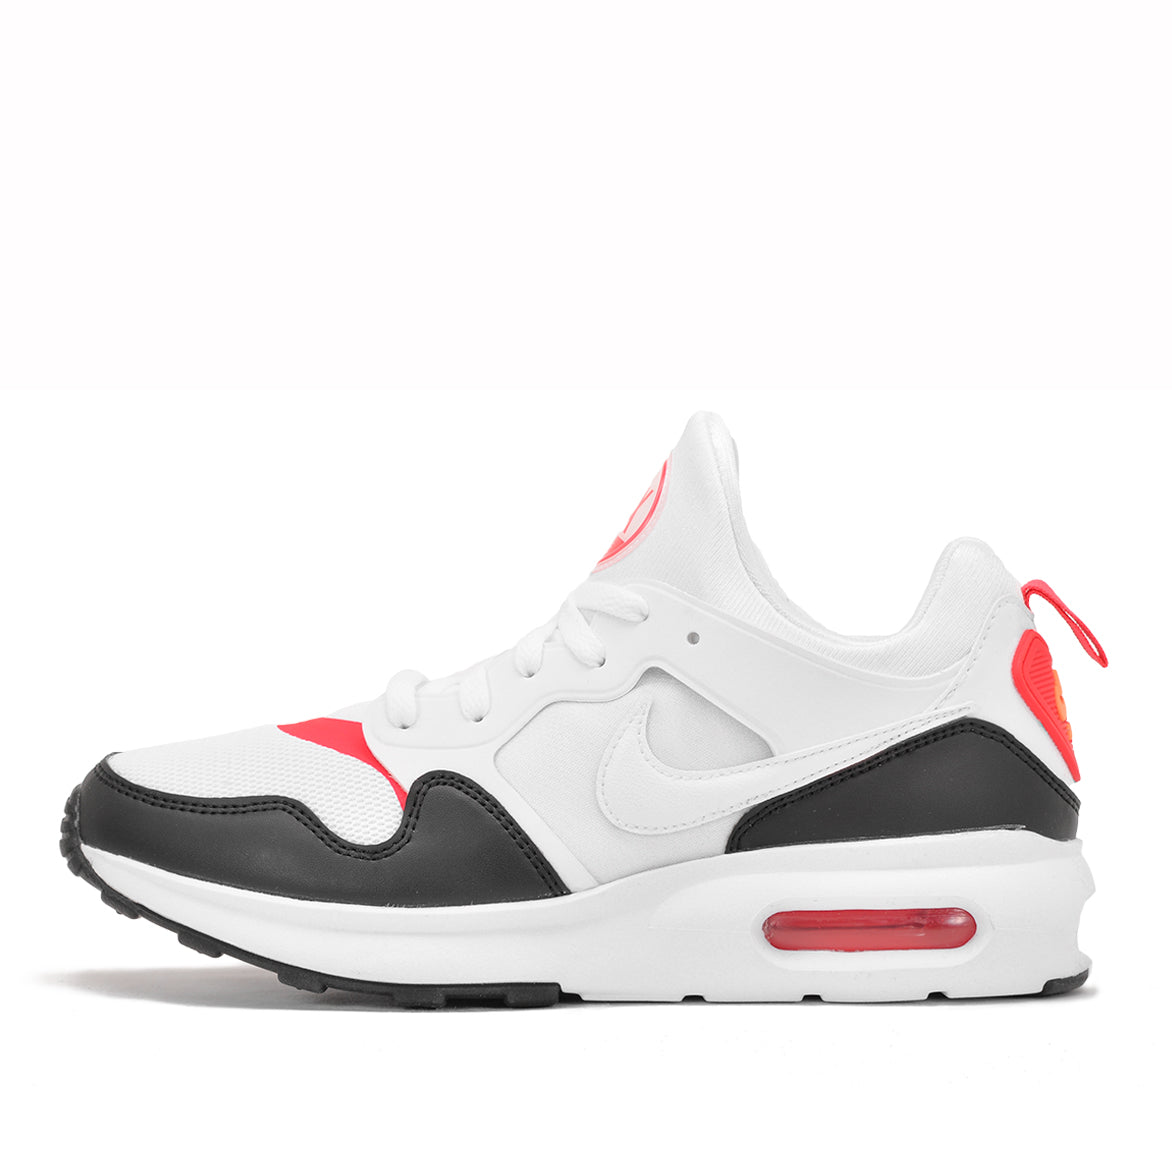 AIR MAX PRIME - WHITE / SIREN RED